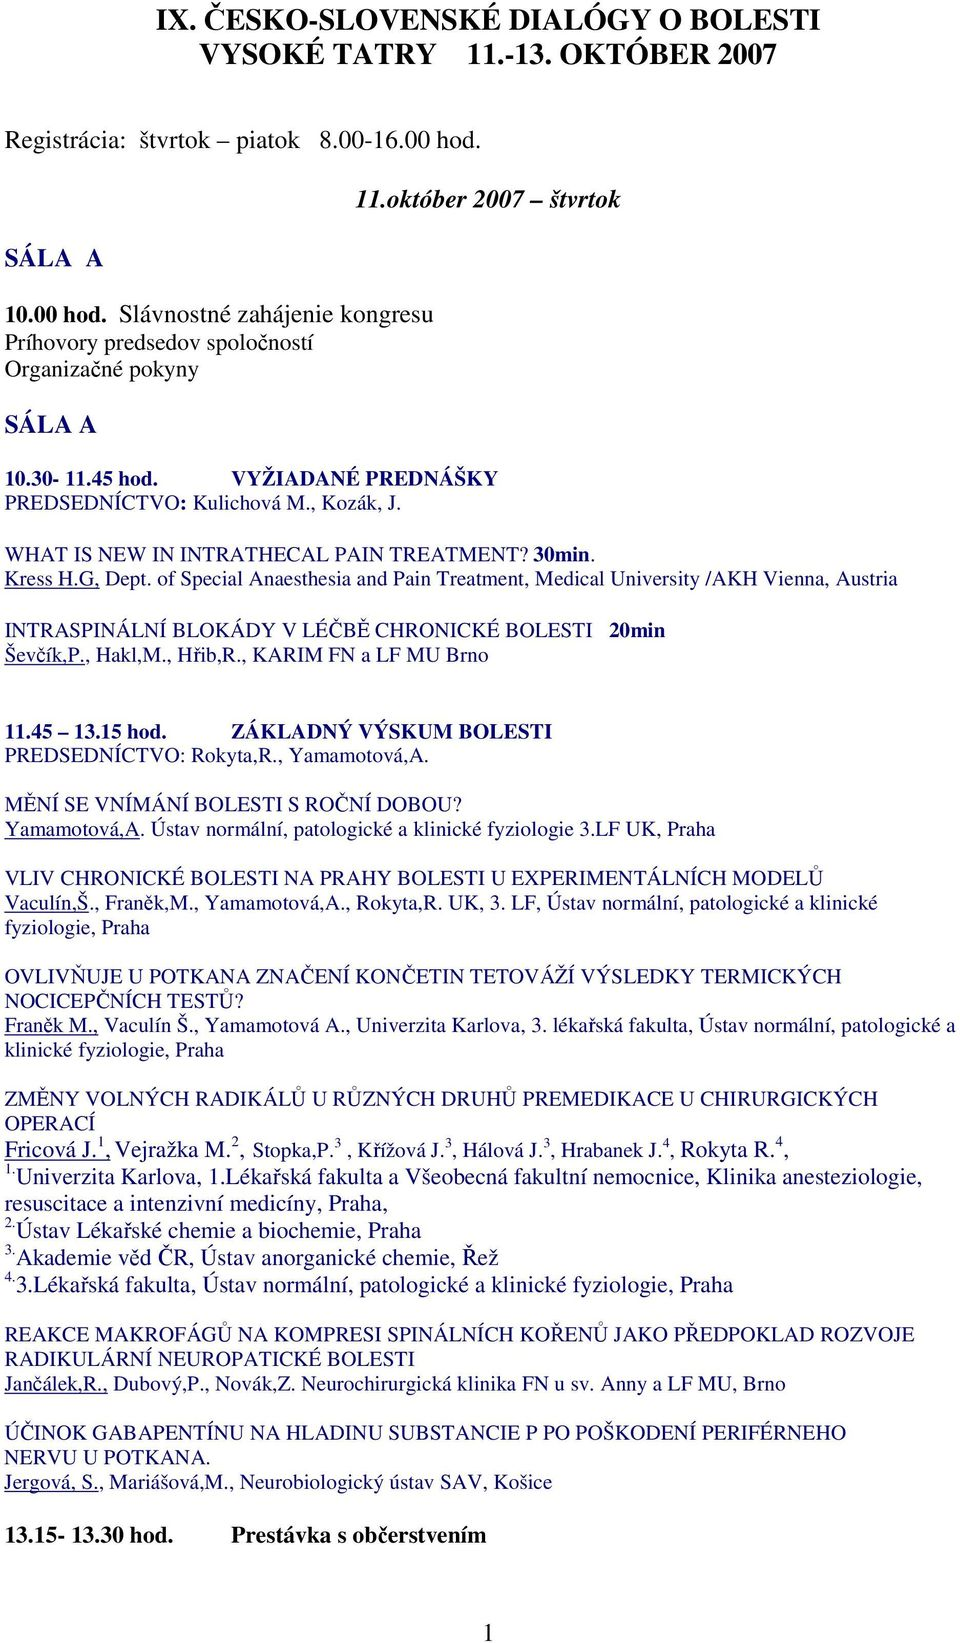 of Special Anaesthesia and Pain Treatment, Medical University /AKH Vienna, Austria INTRASPINÁLNÍ BLOKÁDY V LÉČBĚ CHRONICKÉ BOLESTI 20min Ševčík,P., Hakl,M., Hřib,R., KARIM FN a LF MU Brno 11.45 13.